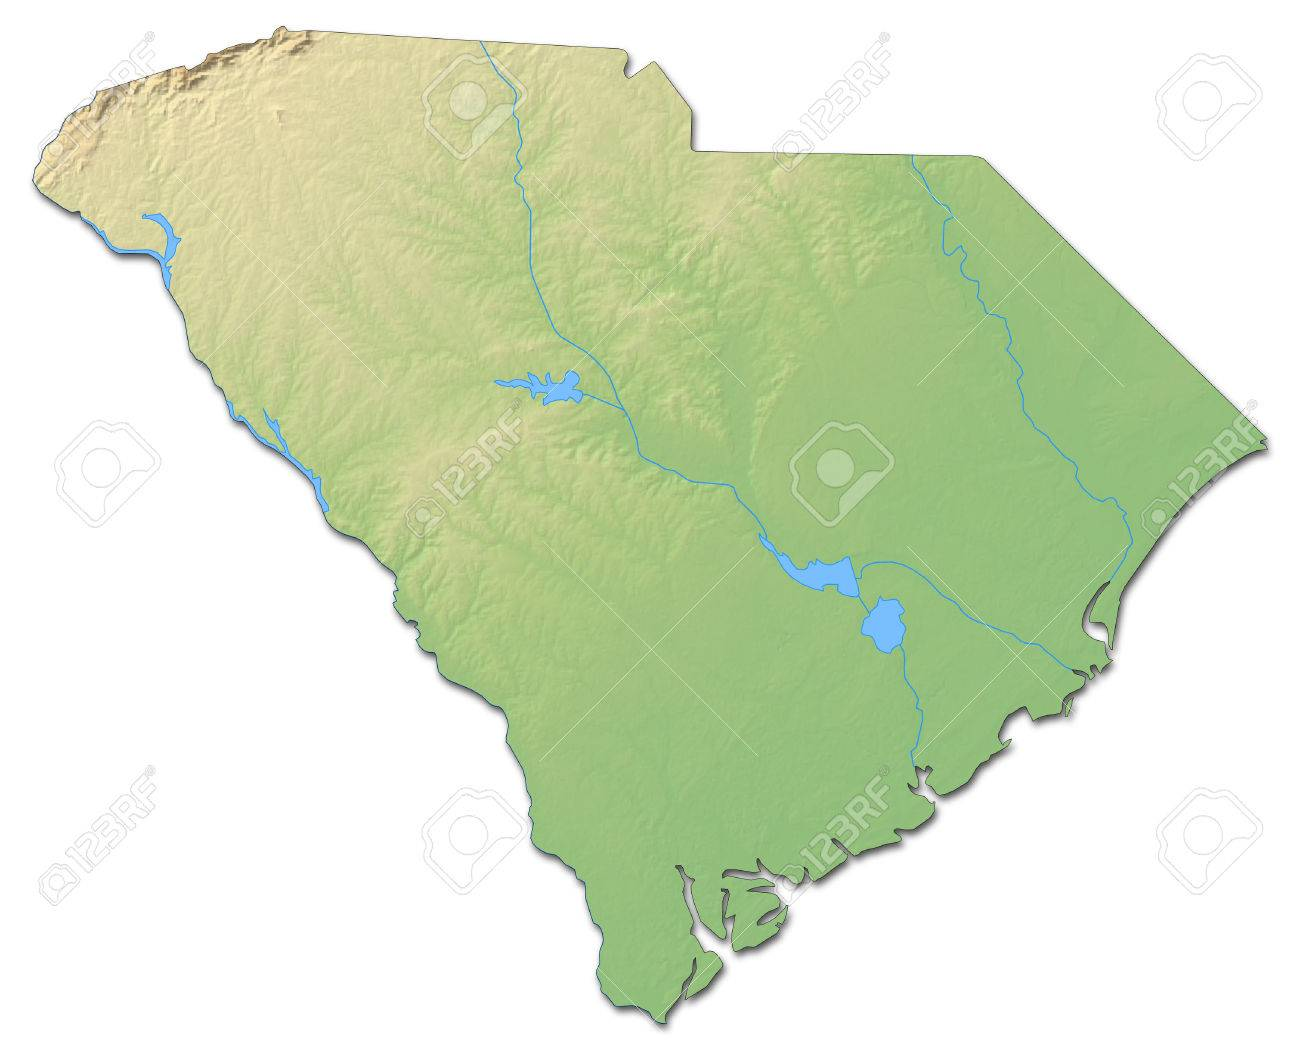 Relief Map Of United States.Relief Map Of South Carolina A Province Of United States With